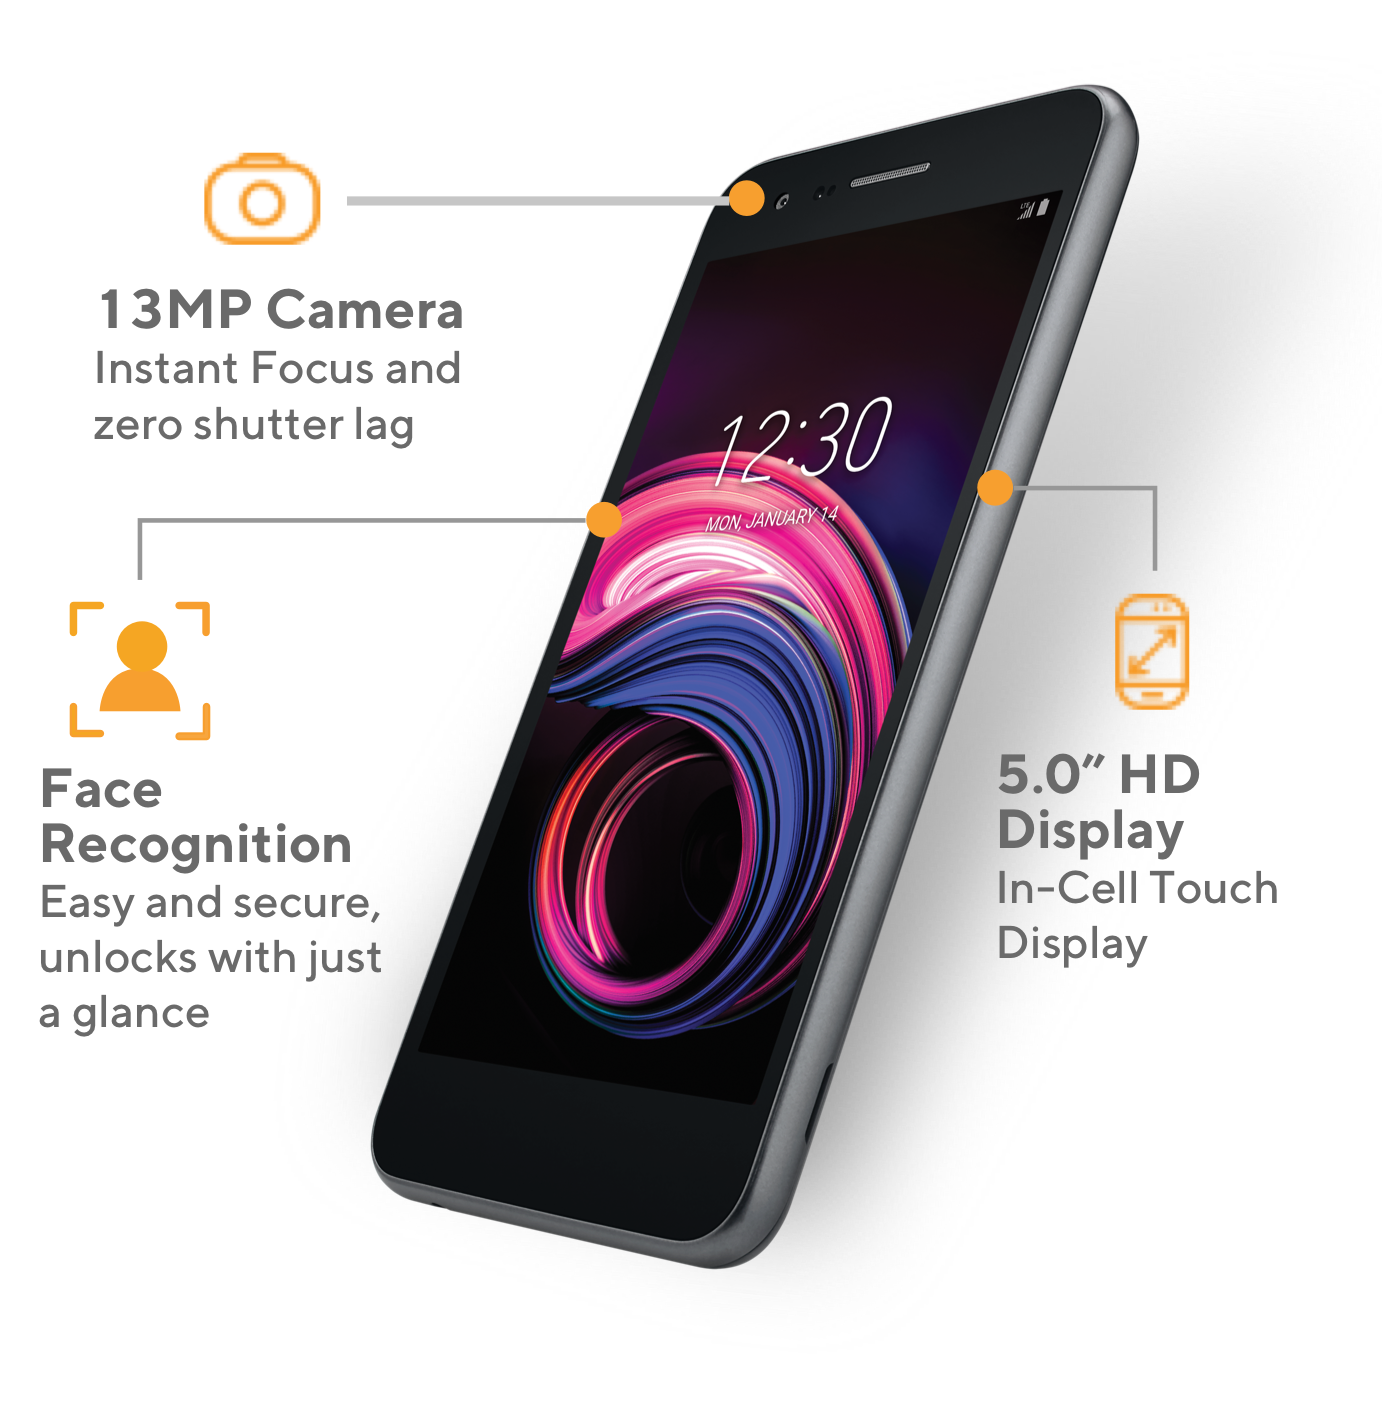 LG Aristo 3 Smartphone - Prices, Specs and More | Metro® by